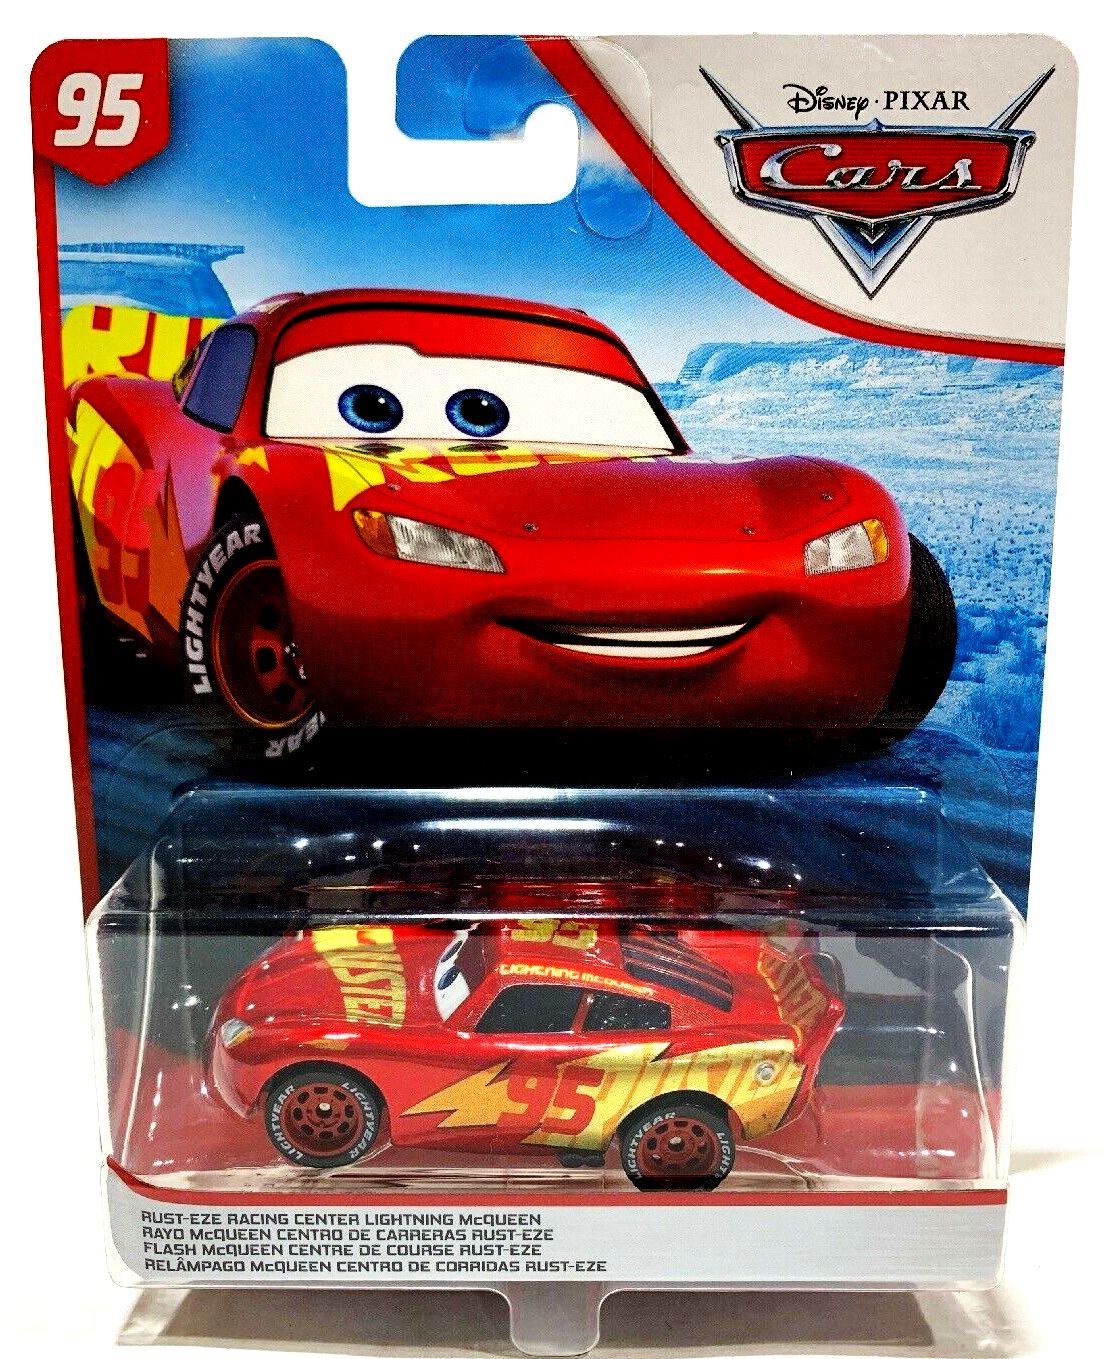 Rust Eze Racing Center Lightning Mcqueen 95 Matallic Red Gold